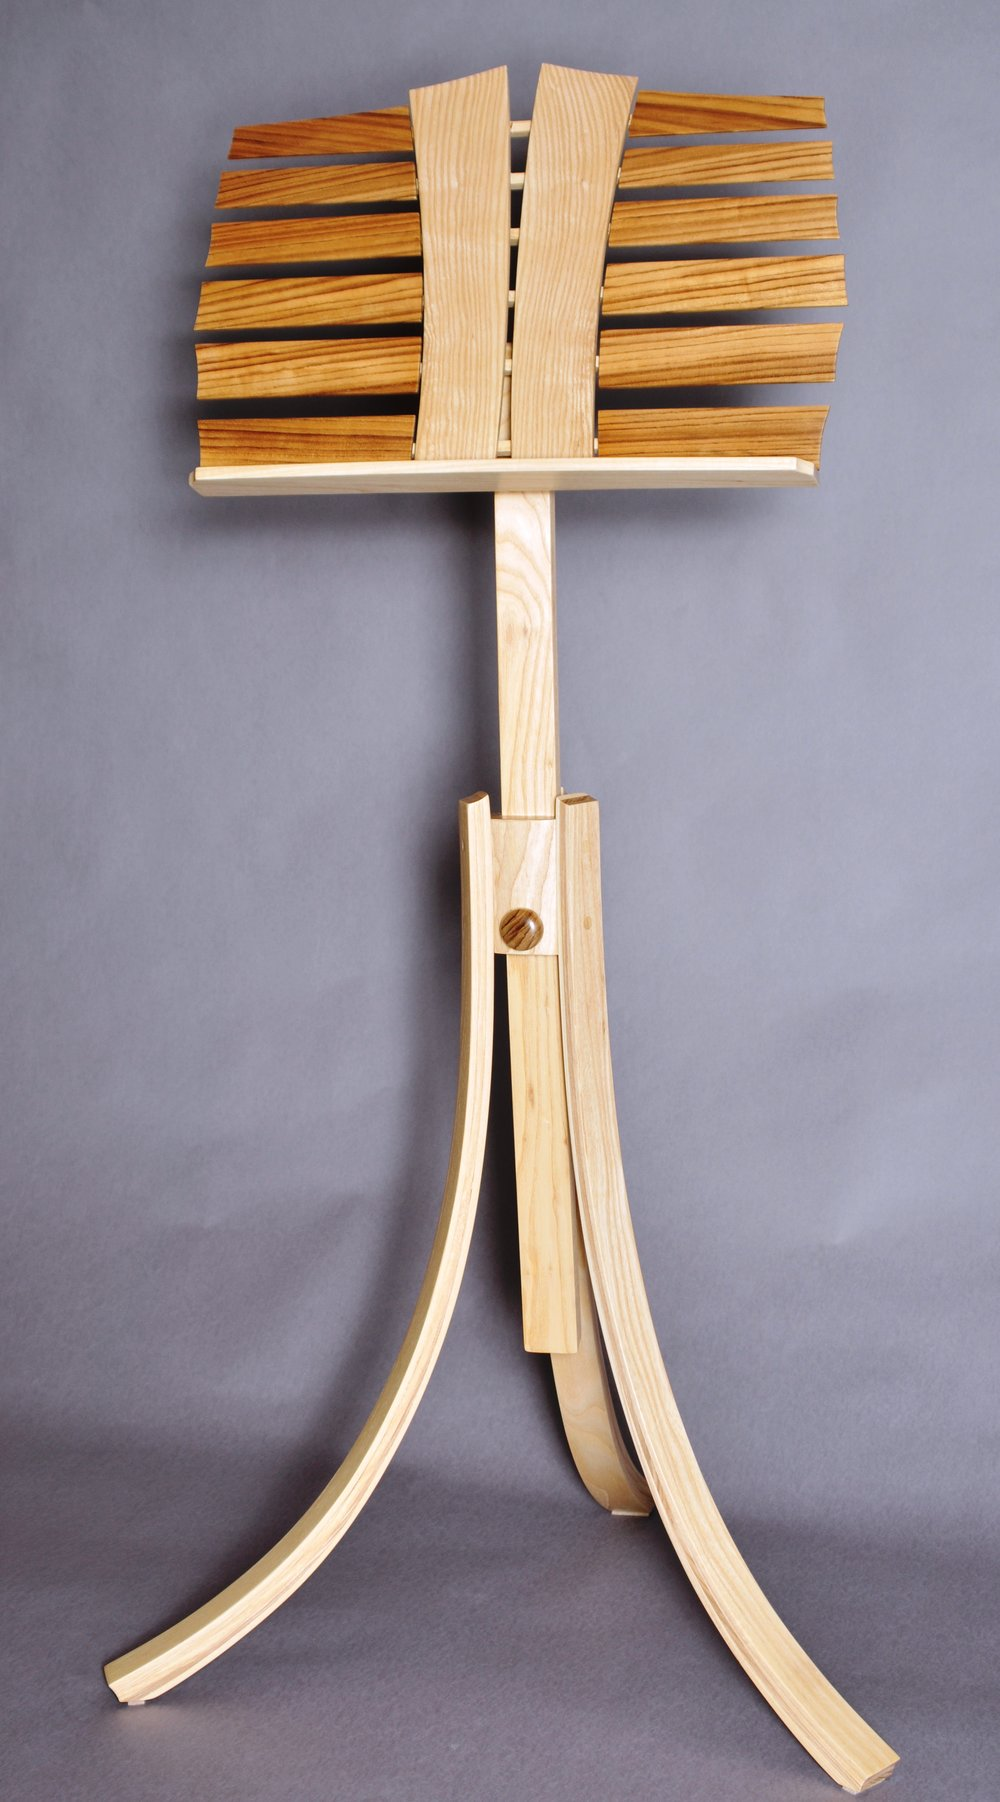 Stave and Clef - Ash Stand and Clefs with Zebra Wood Staves